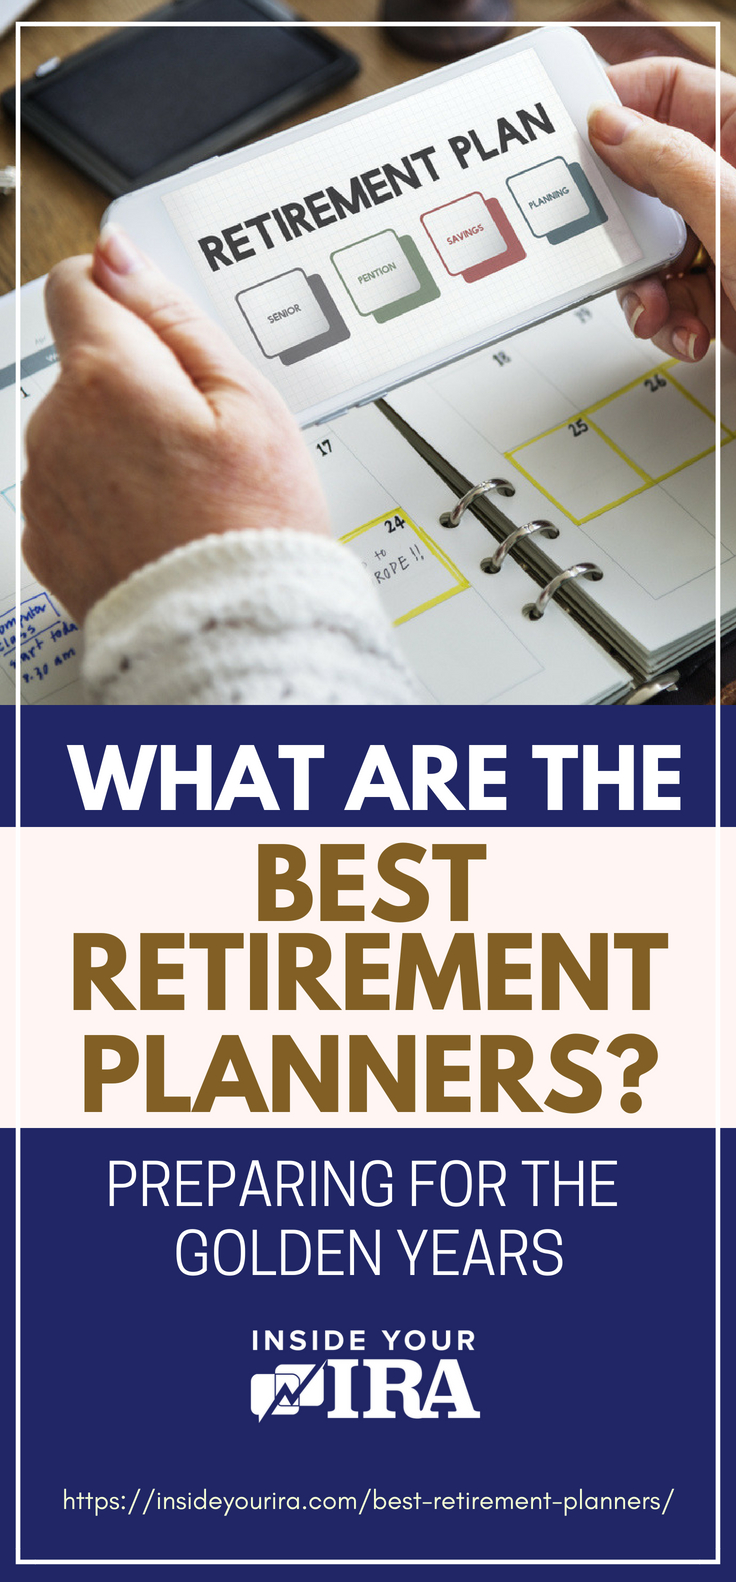 Pinterest Placard | What Are The Best Retirement Planners? Preparing For The Golden Years | Inside Your IRA | looking for retirement planners